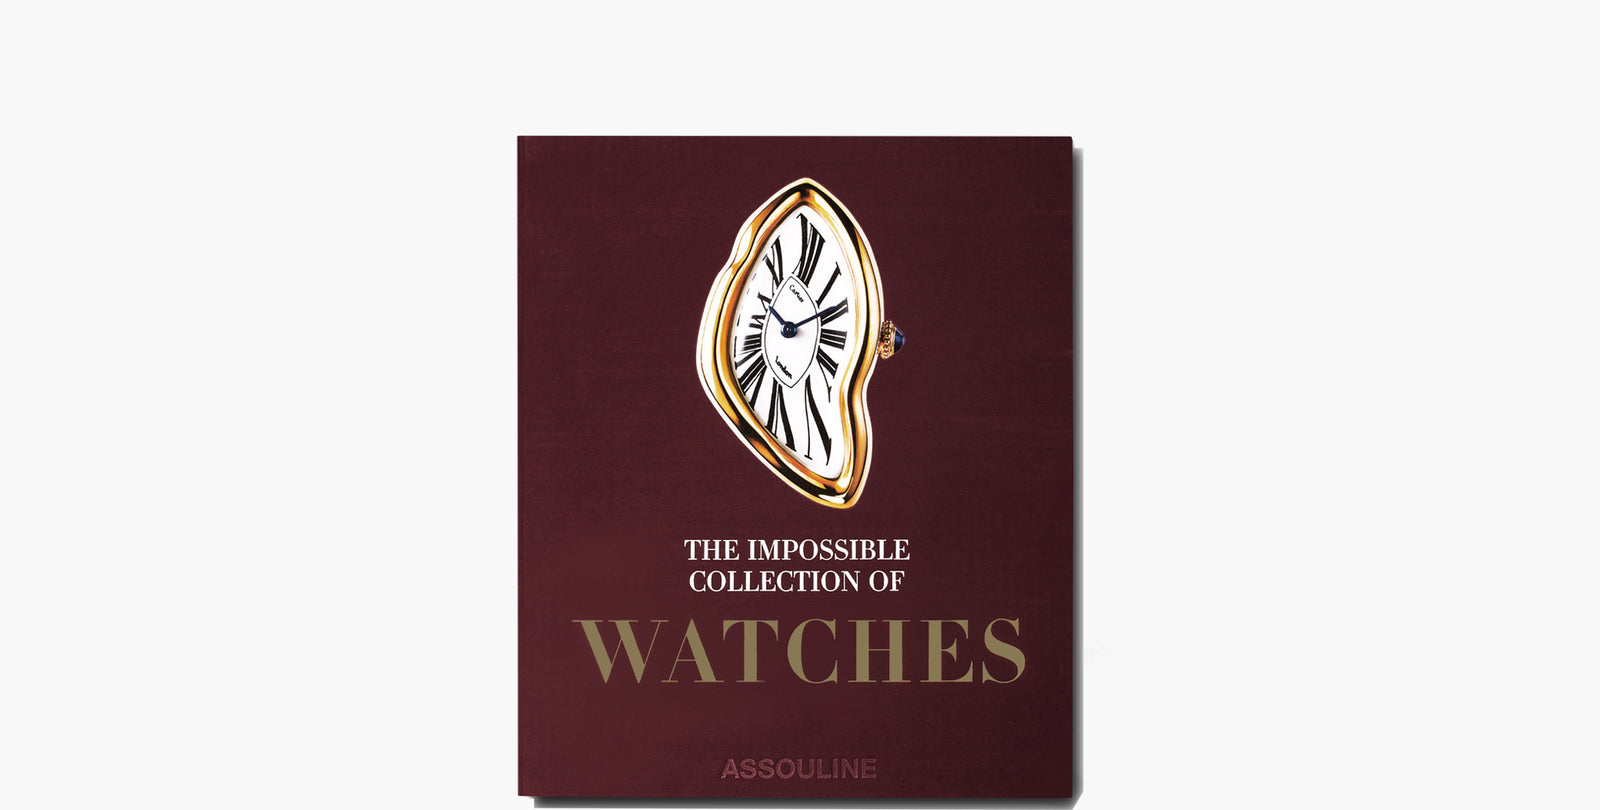 The Impossible Collection of Watches